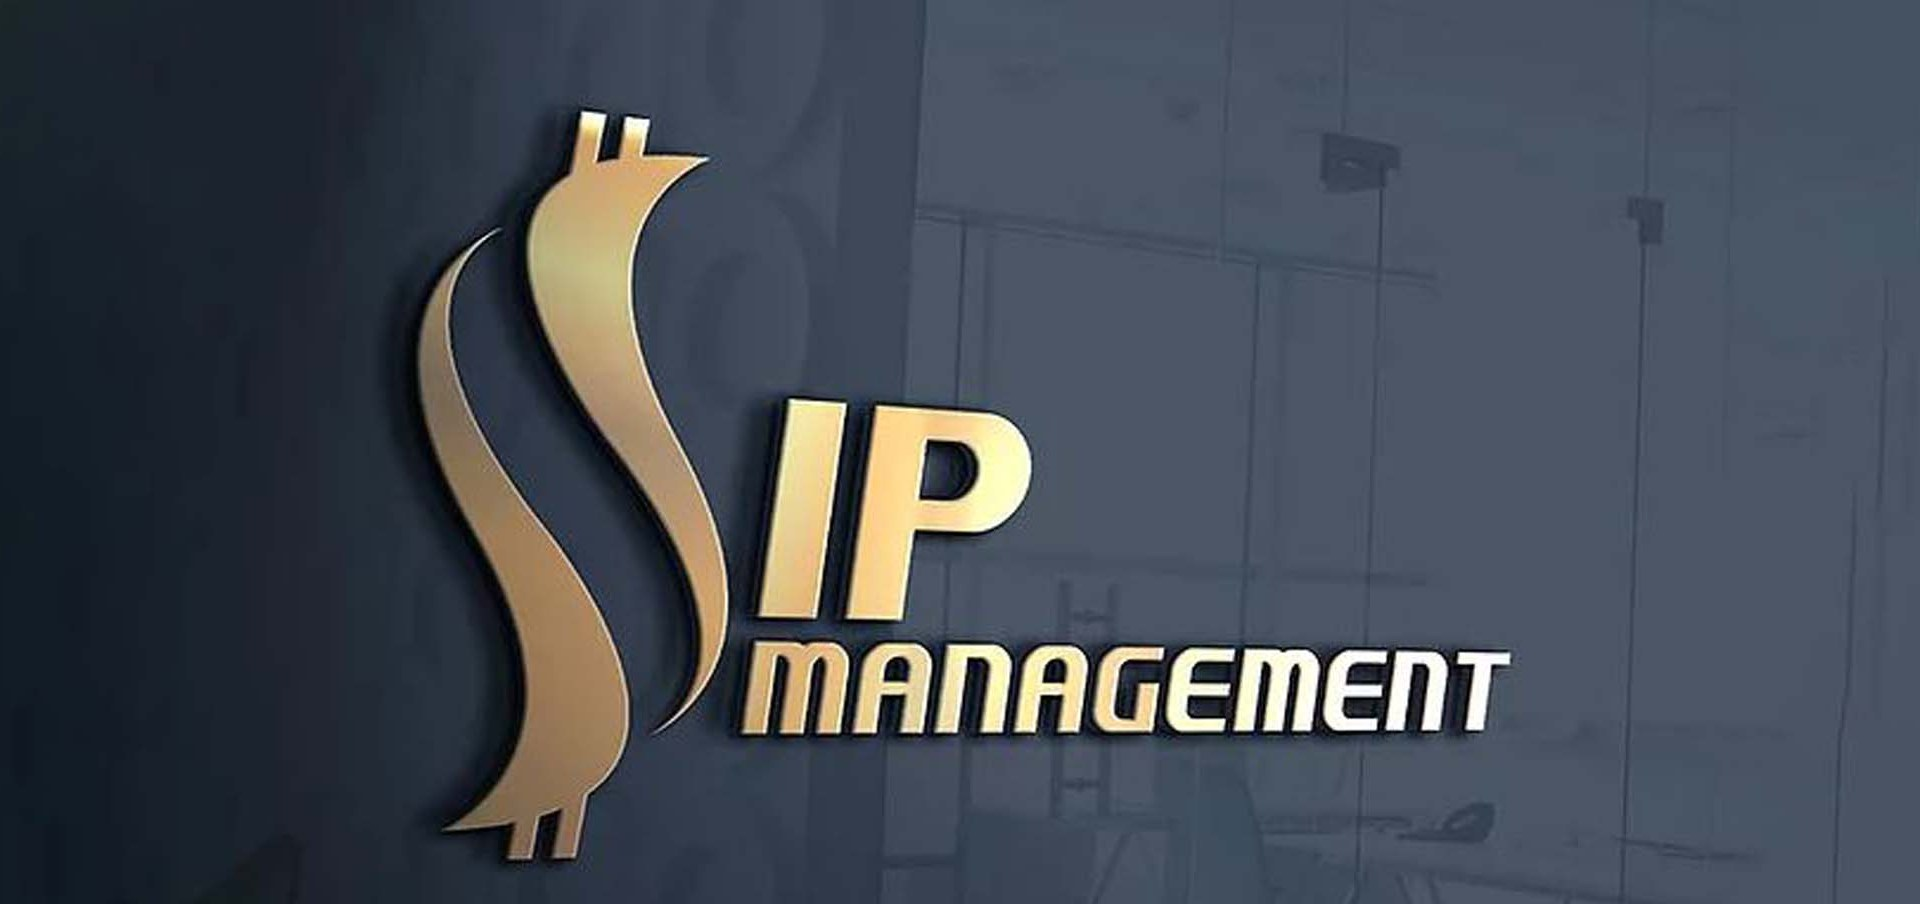 SIP Management to Provide Subscribers With Early Access to its Online Platform